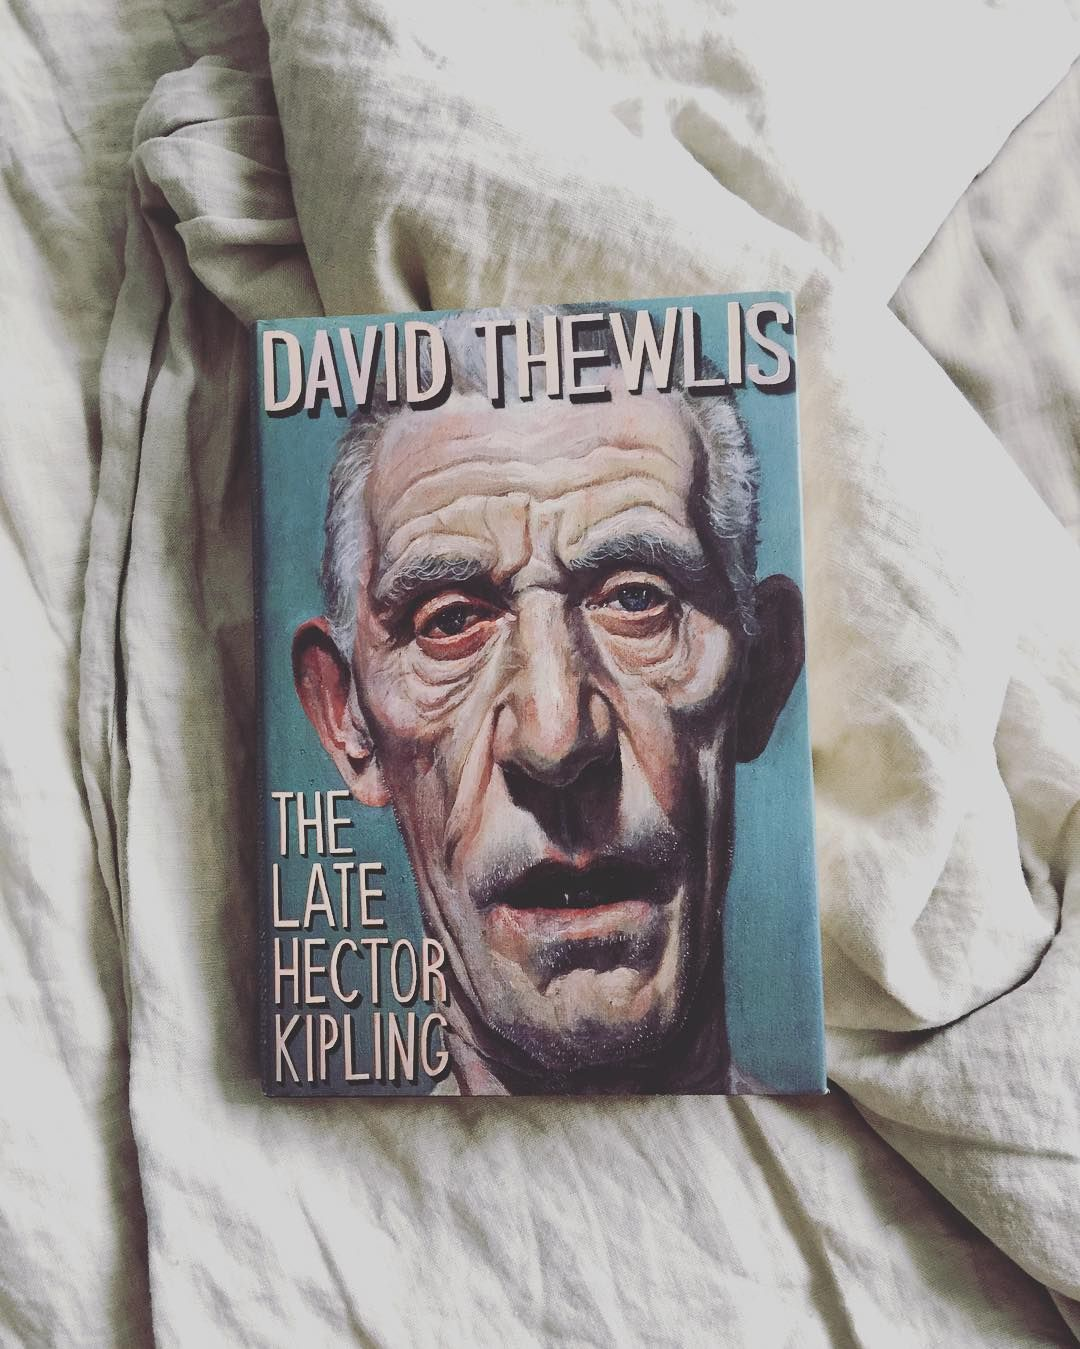 """61 Likes, 1 Comments - Books Junkie Kuala Lumpur (@booksjunkie) on Instagram: """"RM 30.00 — New Hardcover  The Late Hector Kipling By David Thewlis  Hector Kipling is an artist who…"""""""